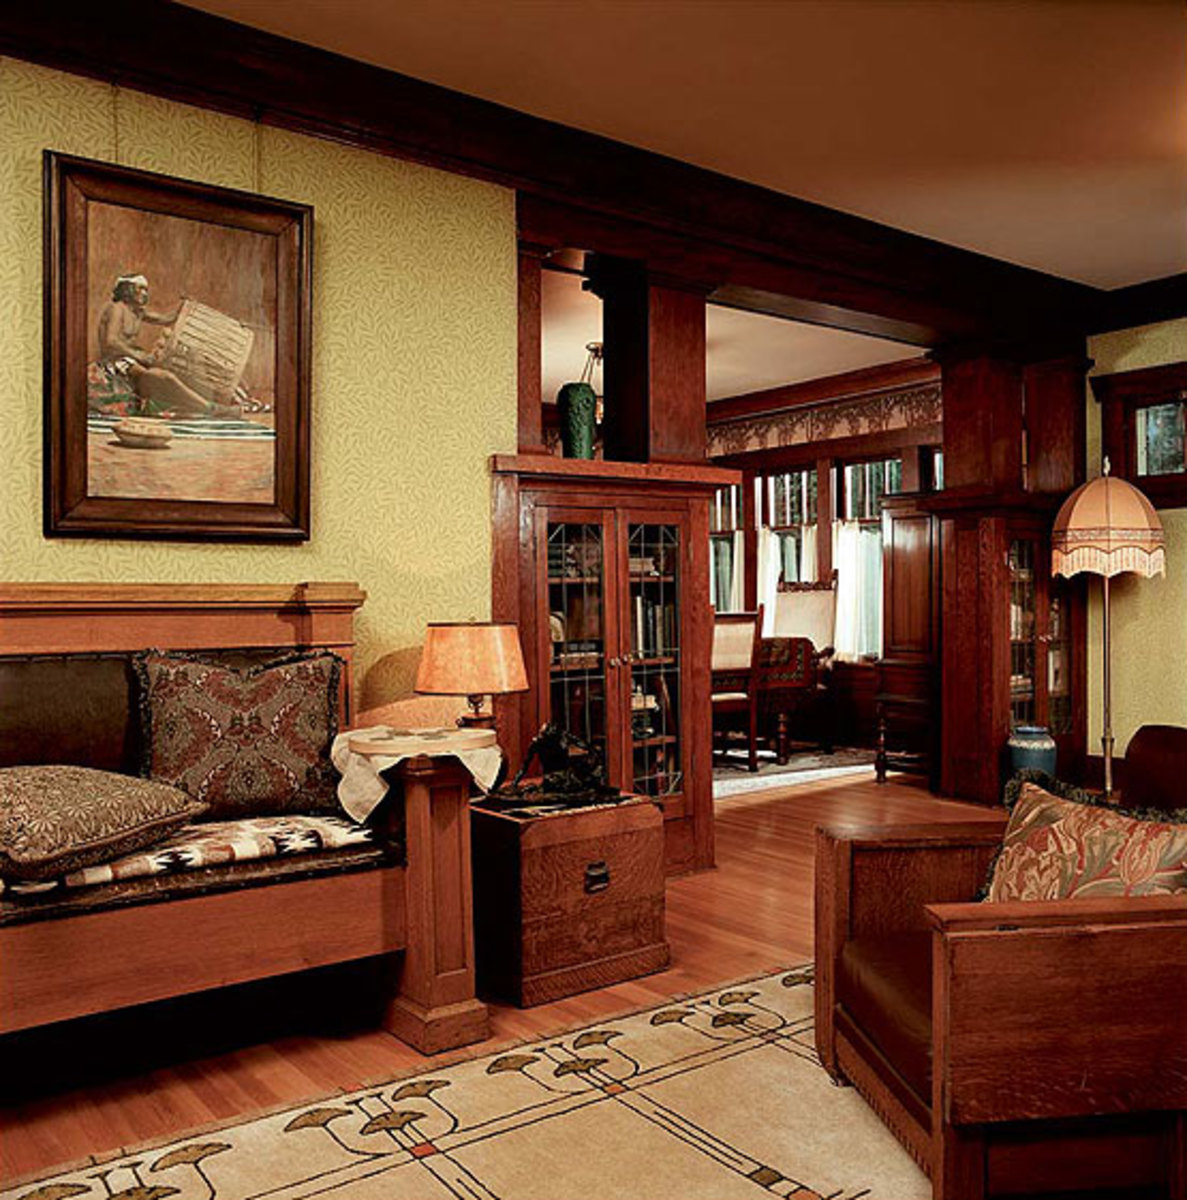 to arts crafts craftsman bungalows part ii bungalow style arts. Black Bedroom Furniture Sets. Home Design Ideas